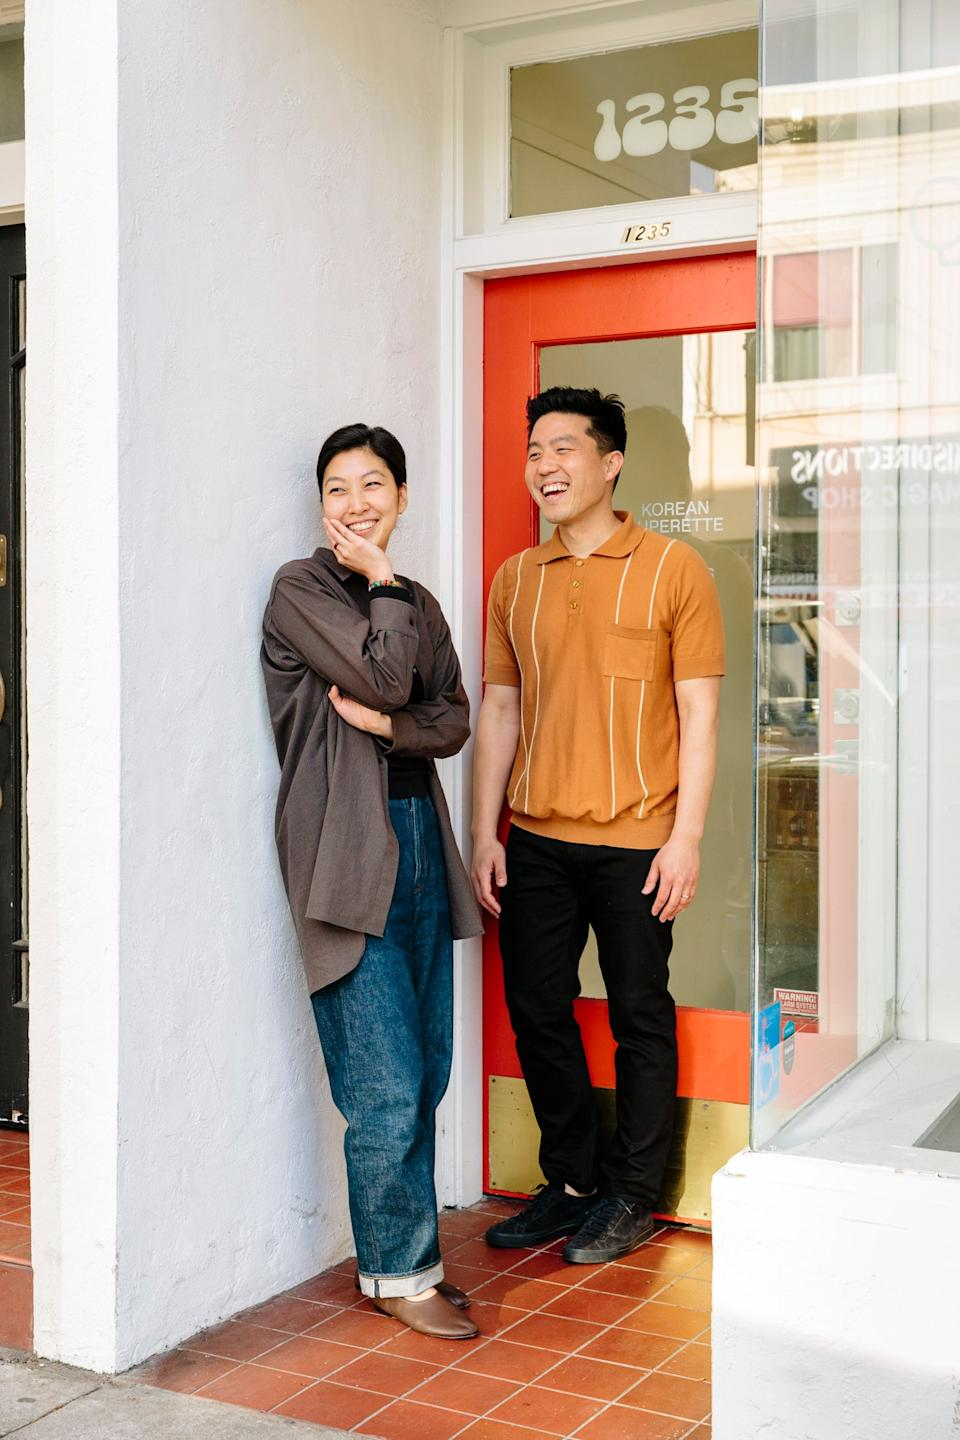 "<div class=""caption"">Clara Lee and Eddo Kim, co-owners of Queens, a Korean market in San Francisco</div><cite class=""credit"">Alanna Hale</cite>"